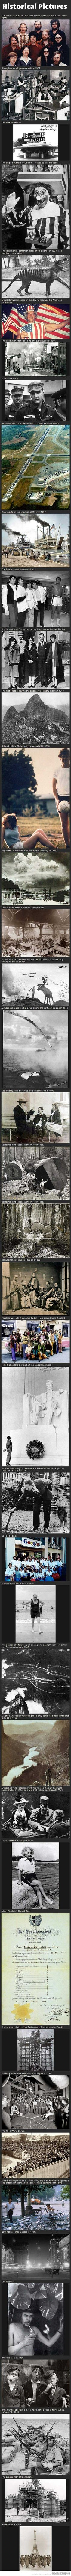 Historic photographs from around the world… More of these please!!!